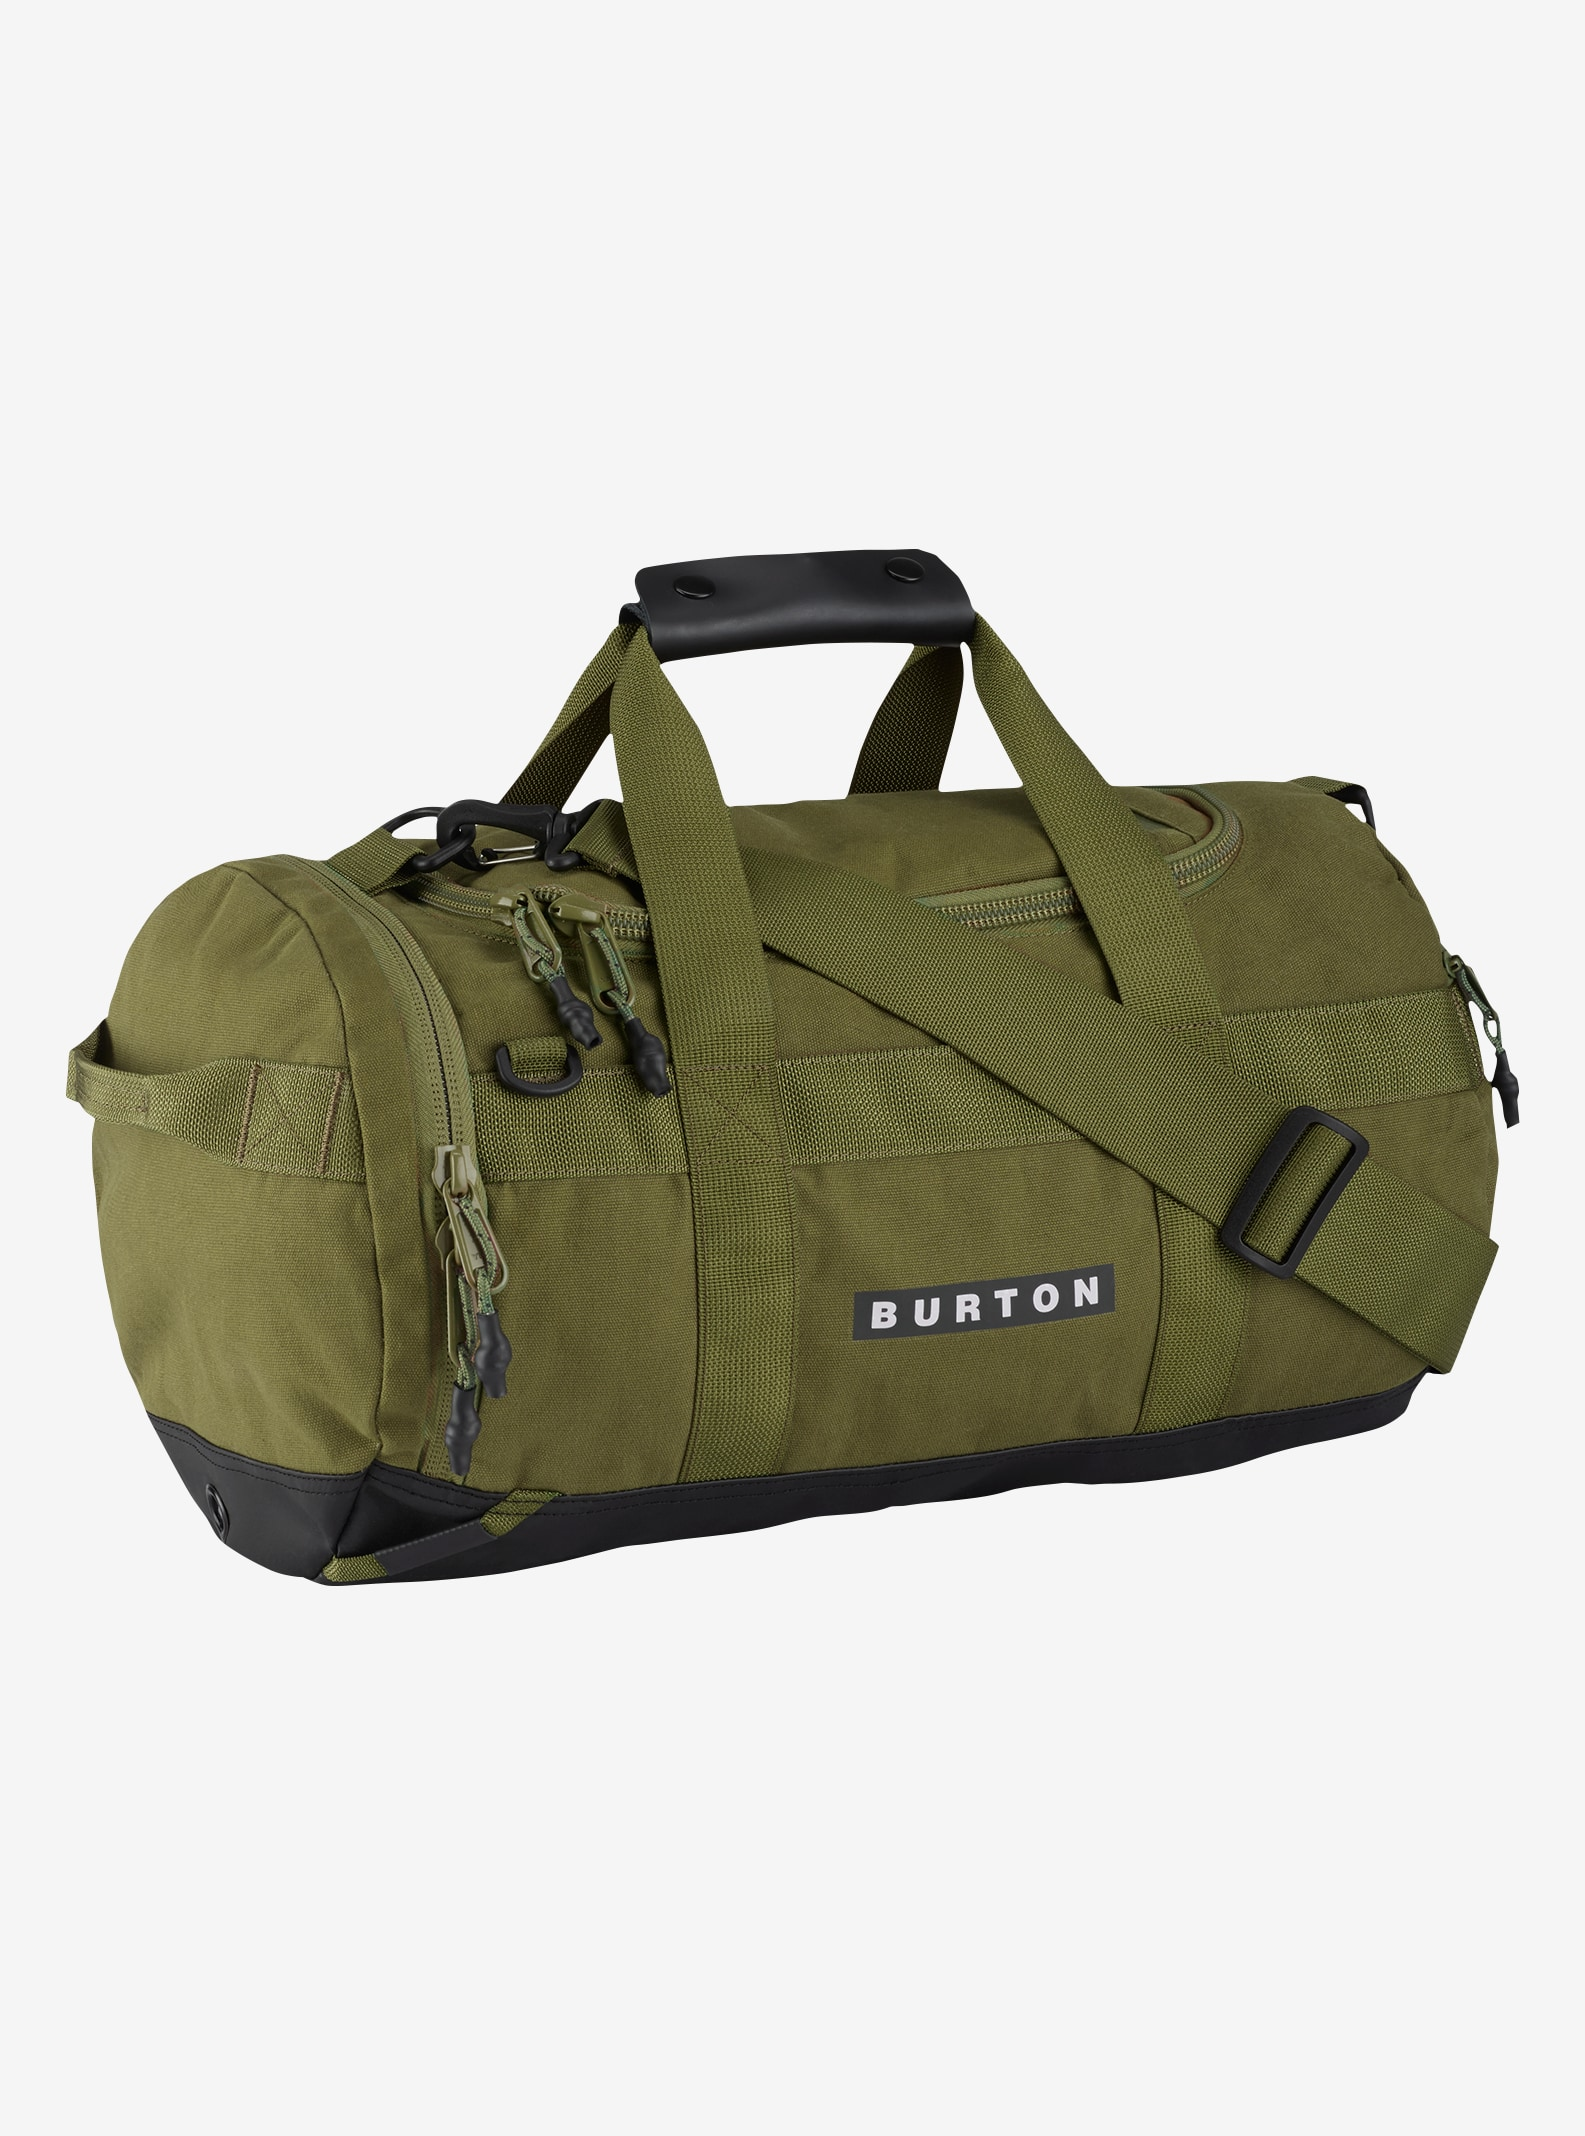 Burton Backhill Duffel Bag X-Small 25L shown in Olive Branch Cotton Cordura®